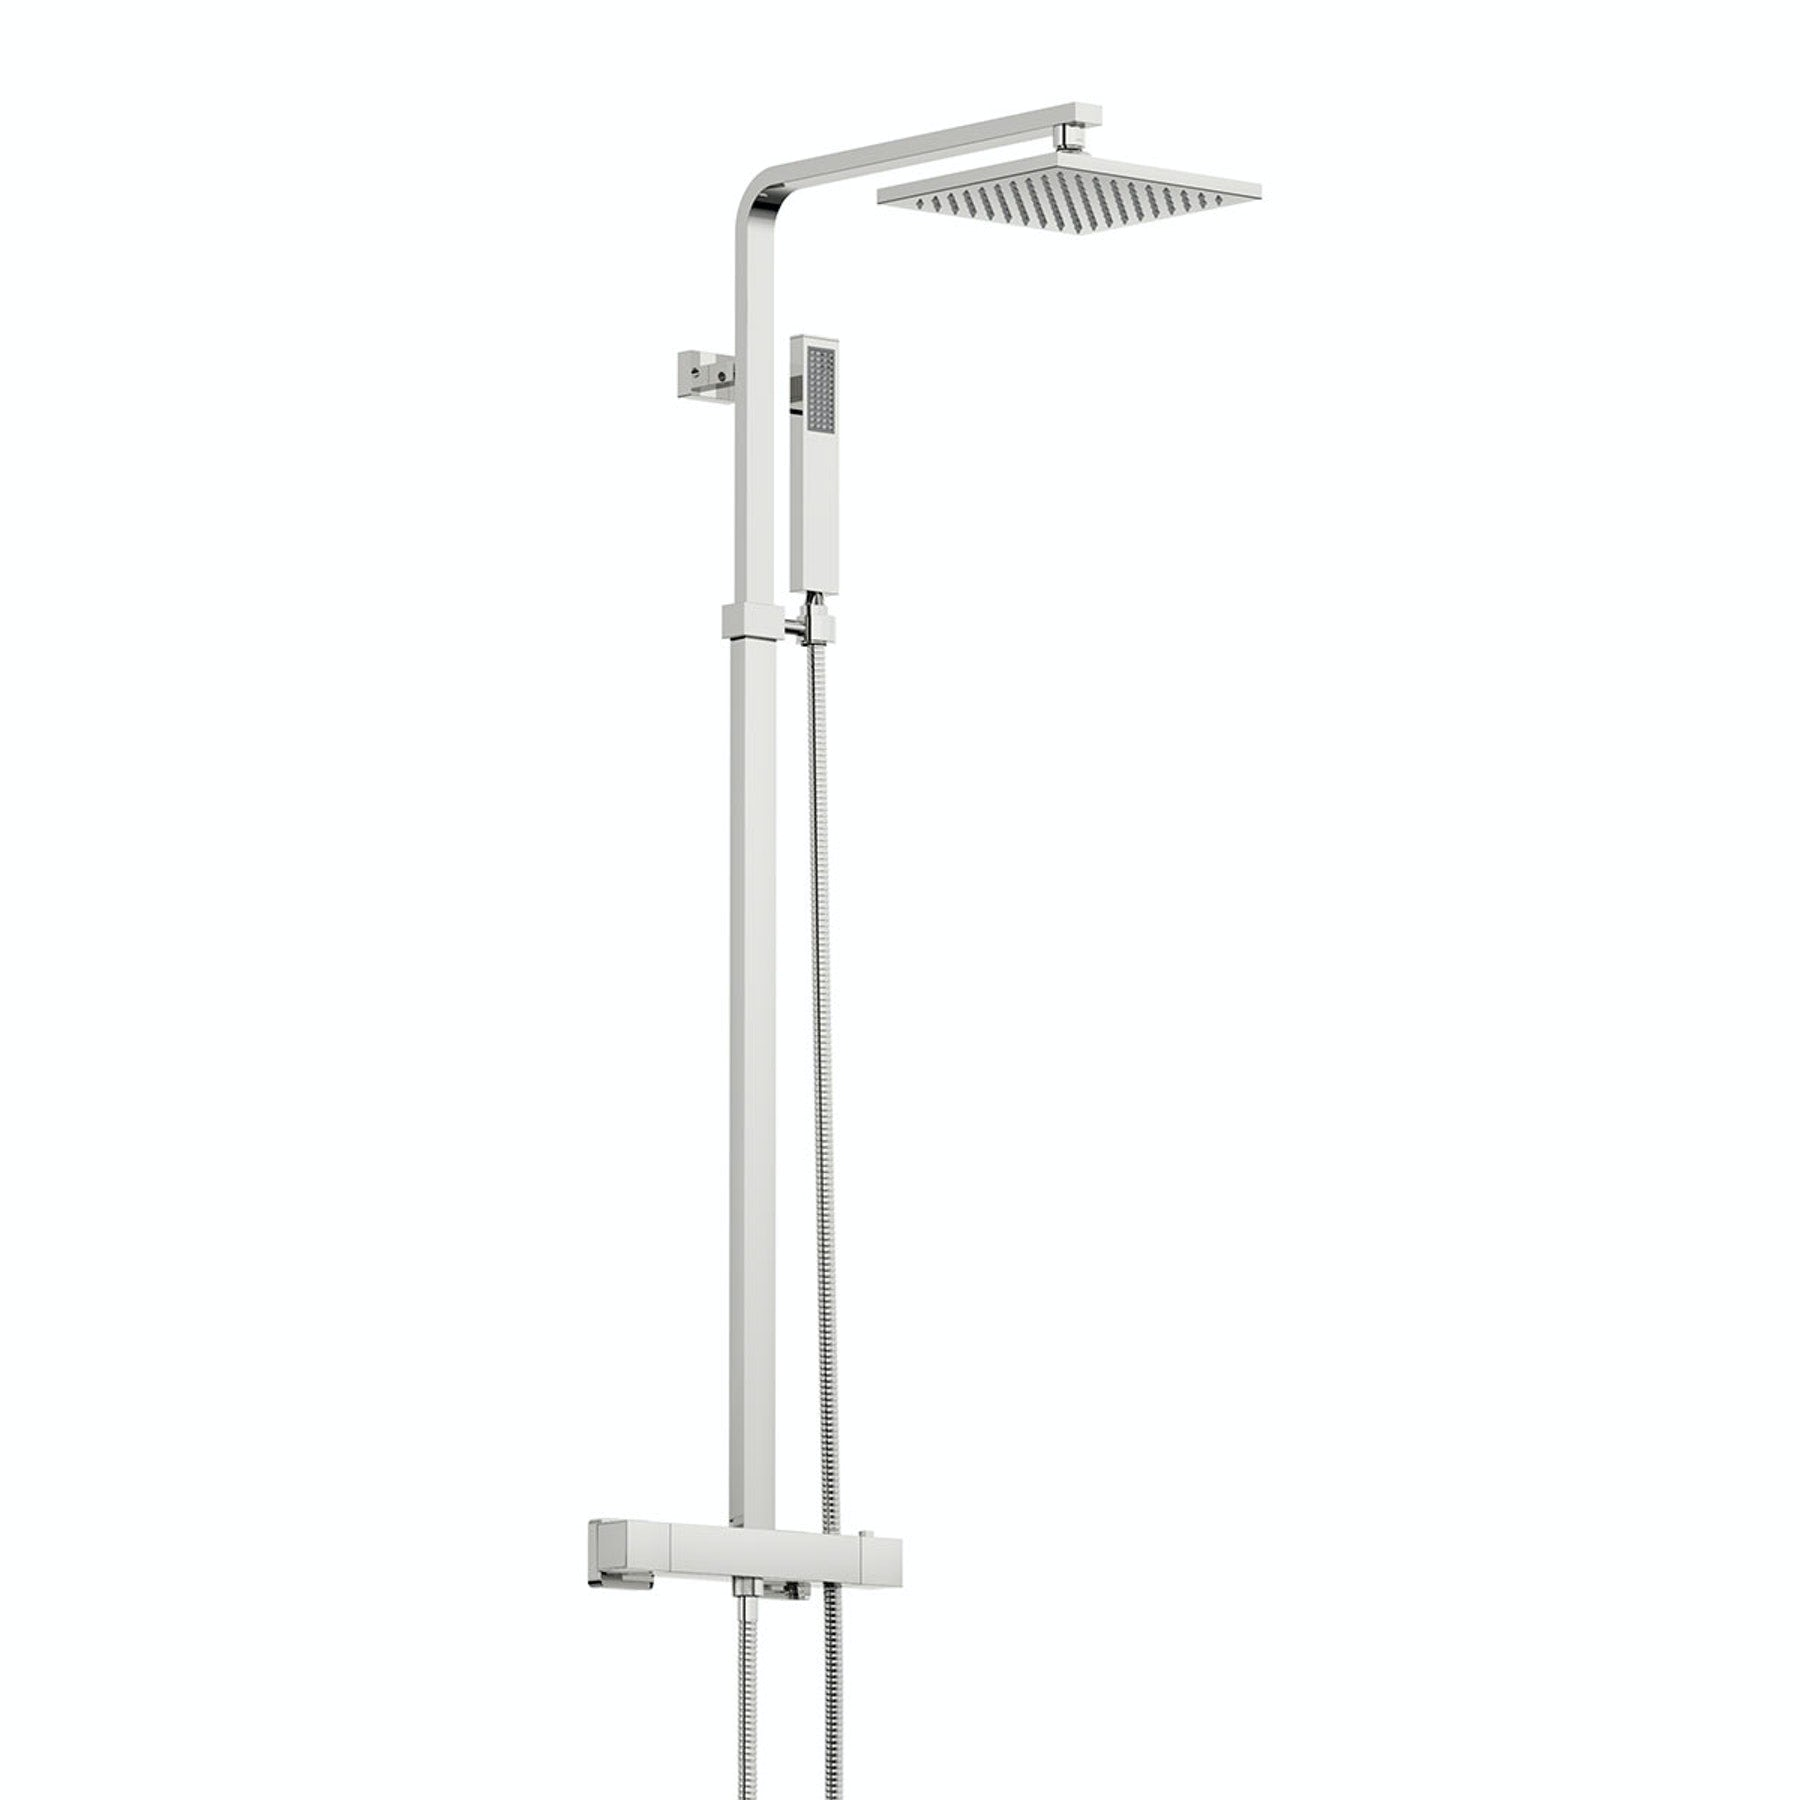 Tetra Square Head Shower Riser System